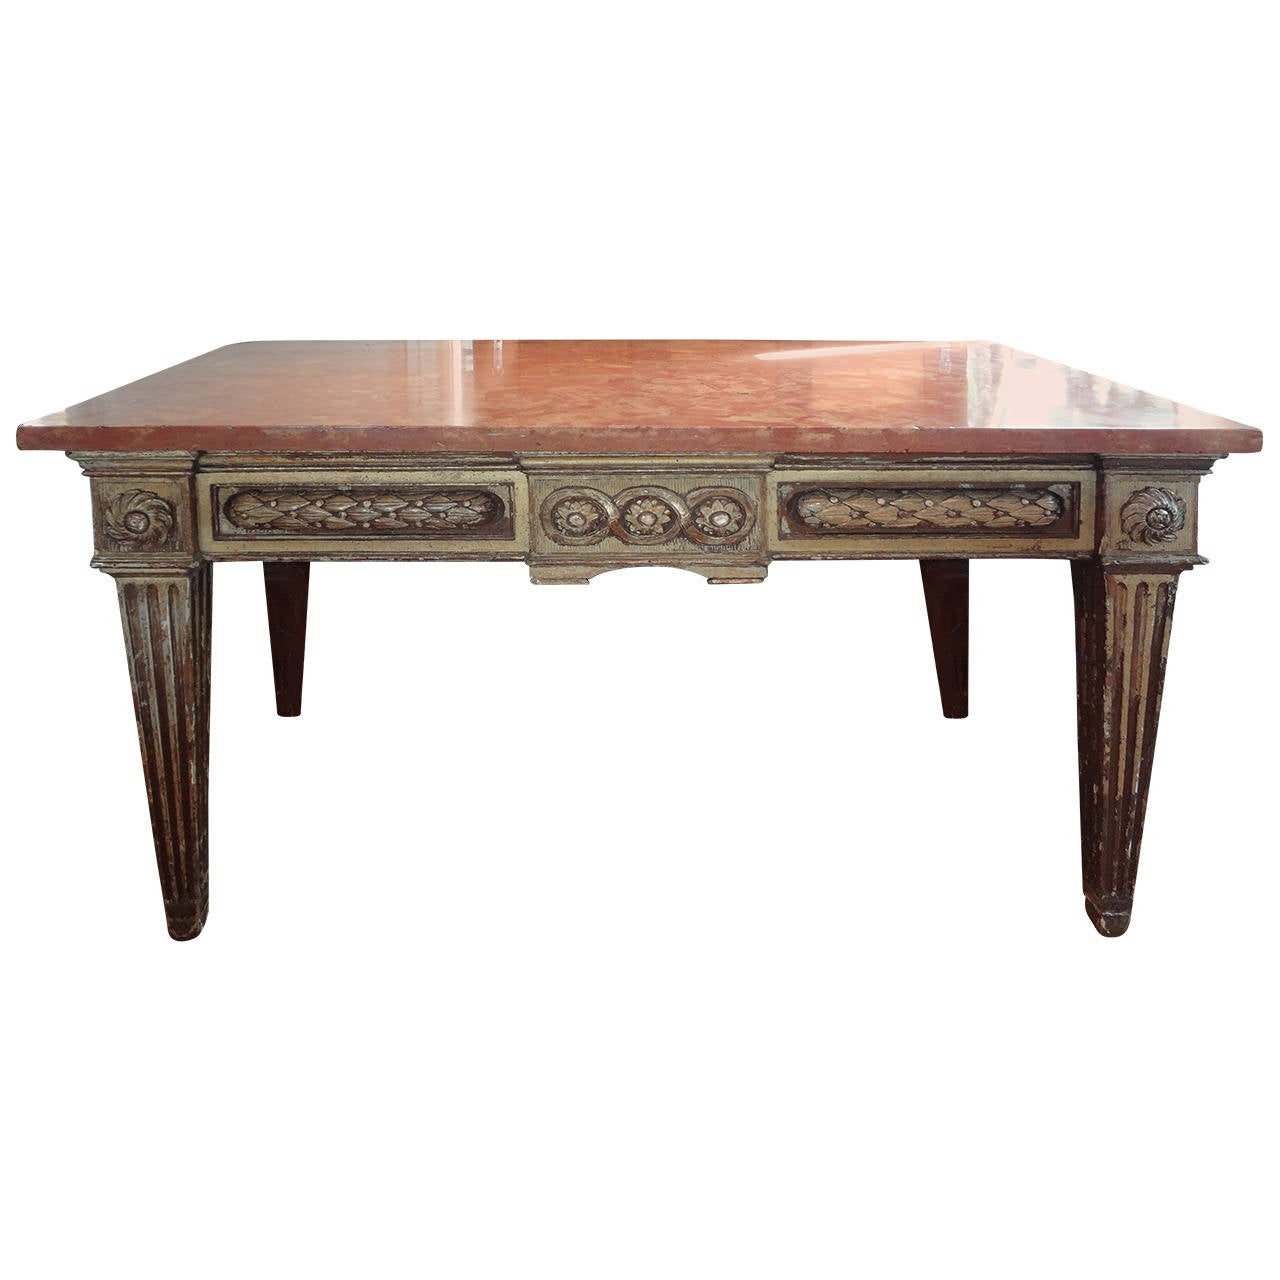 17th Century Italian Gilt Wood Console Table With Marble Top